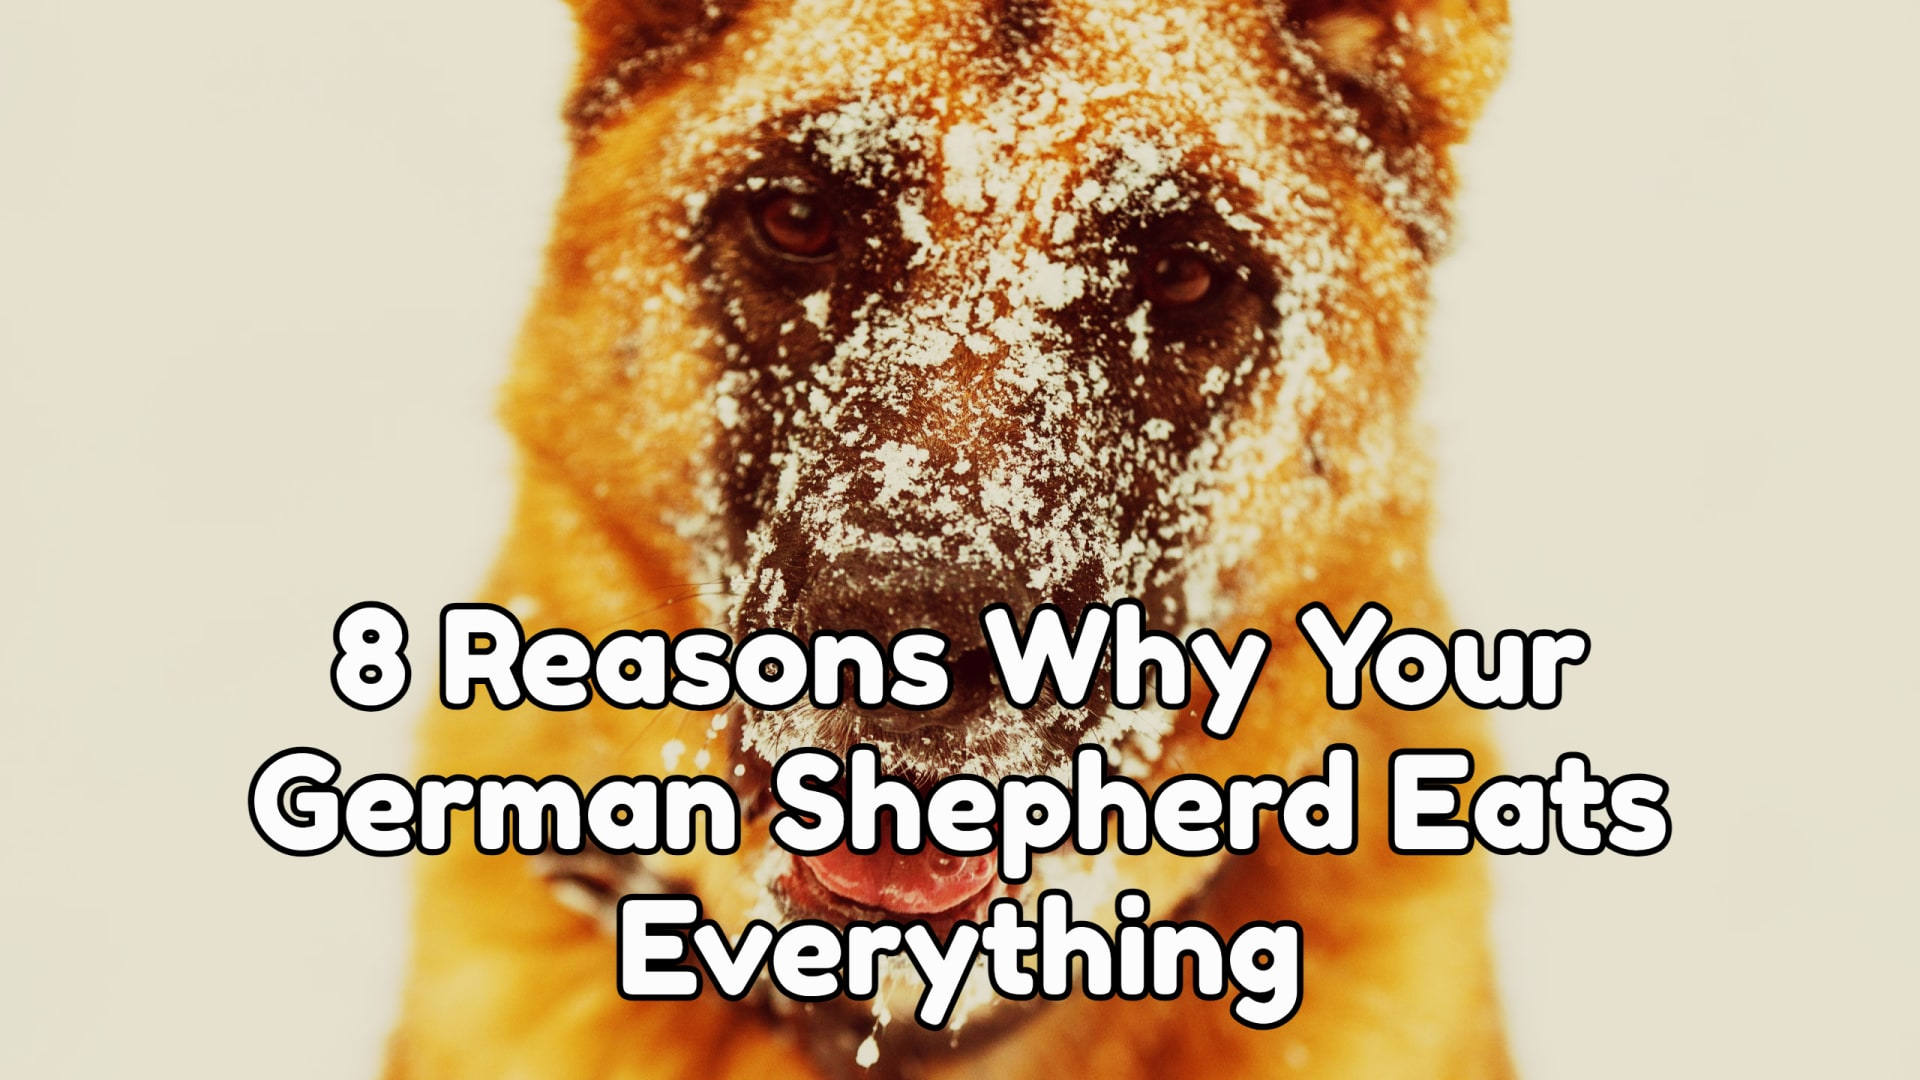 8 Reasons Why Your German Shepherd Eats Everything